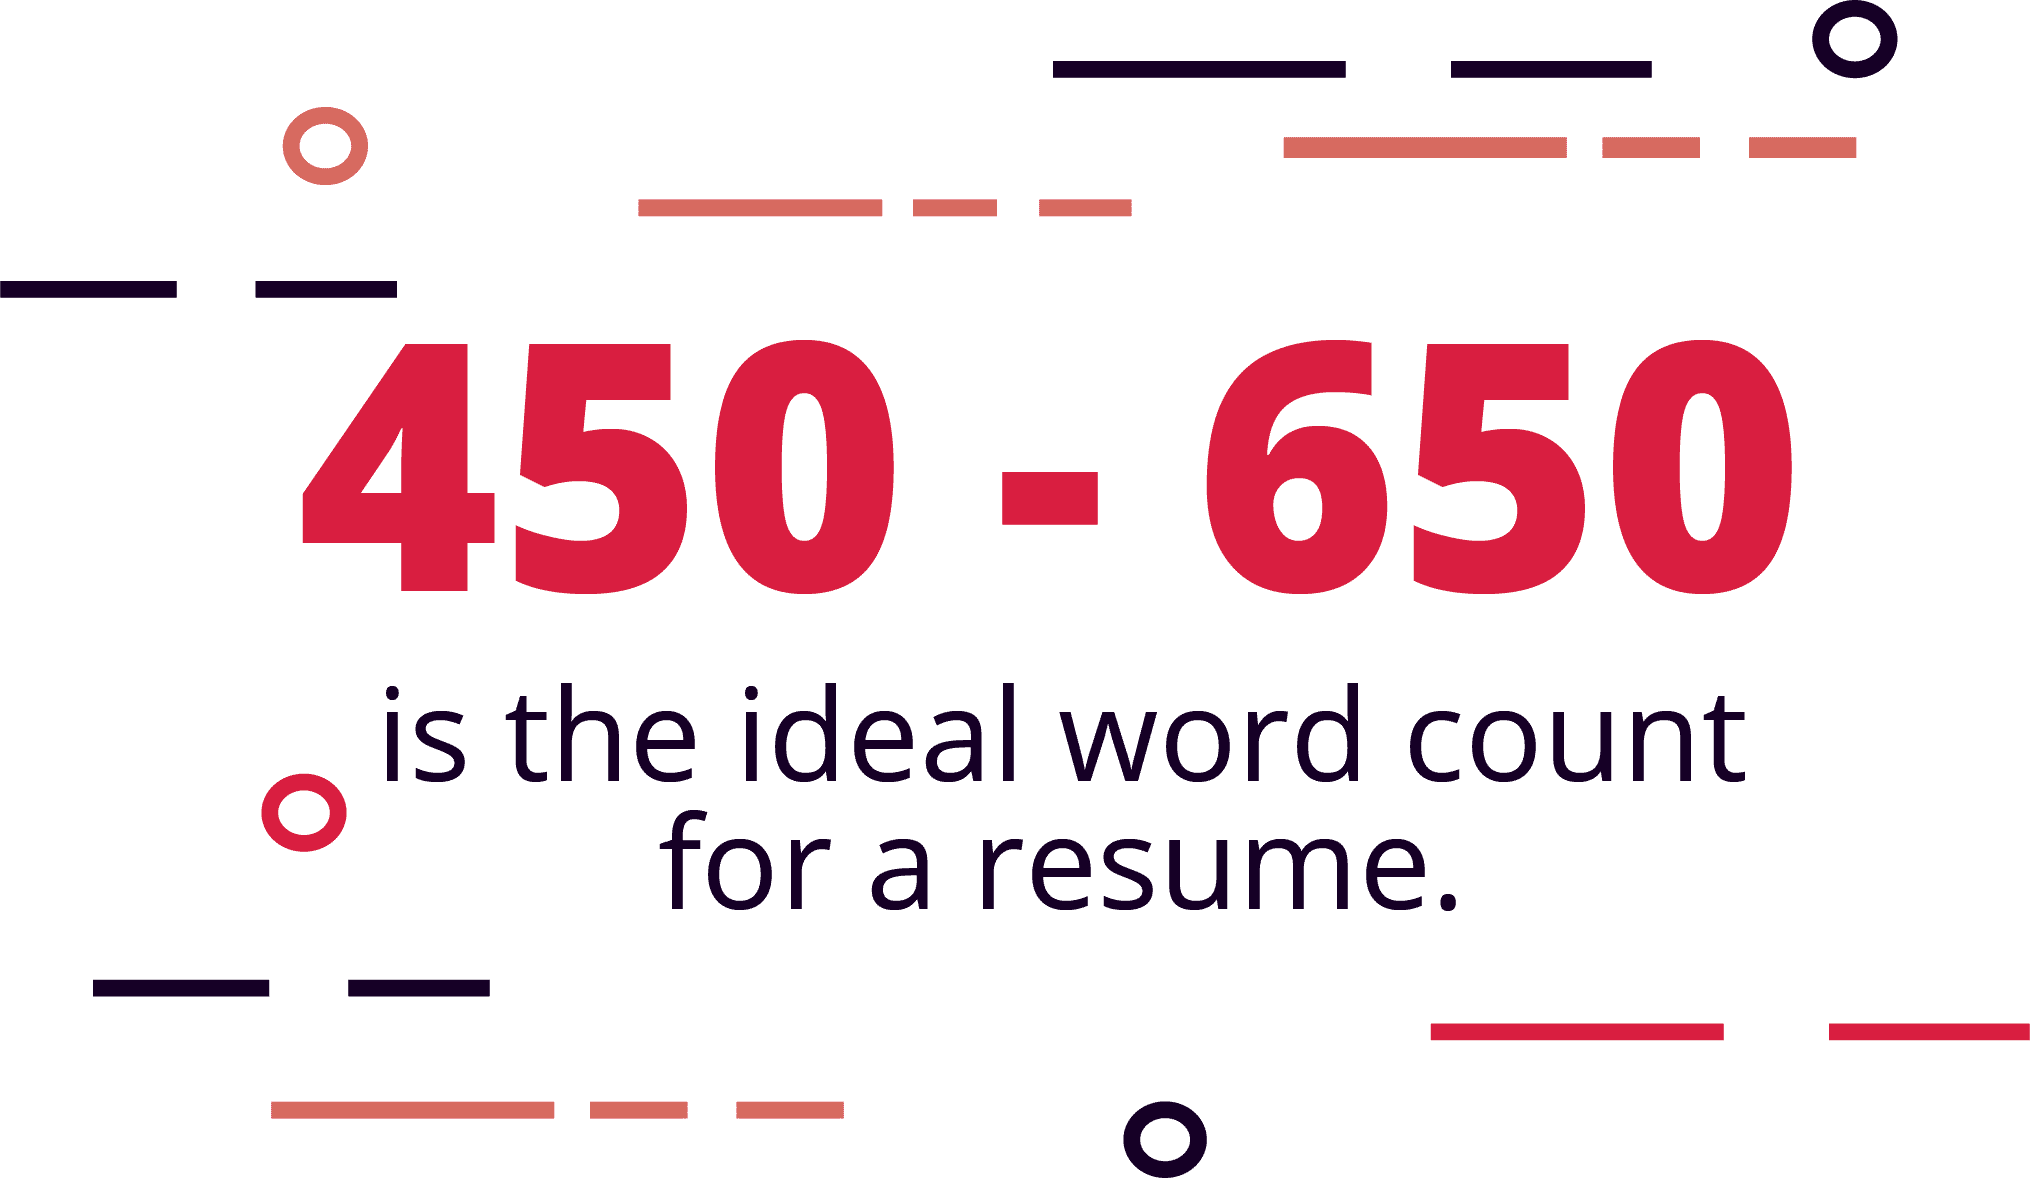 Resumes in the 450-650 word count are more likely to get a callback